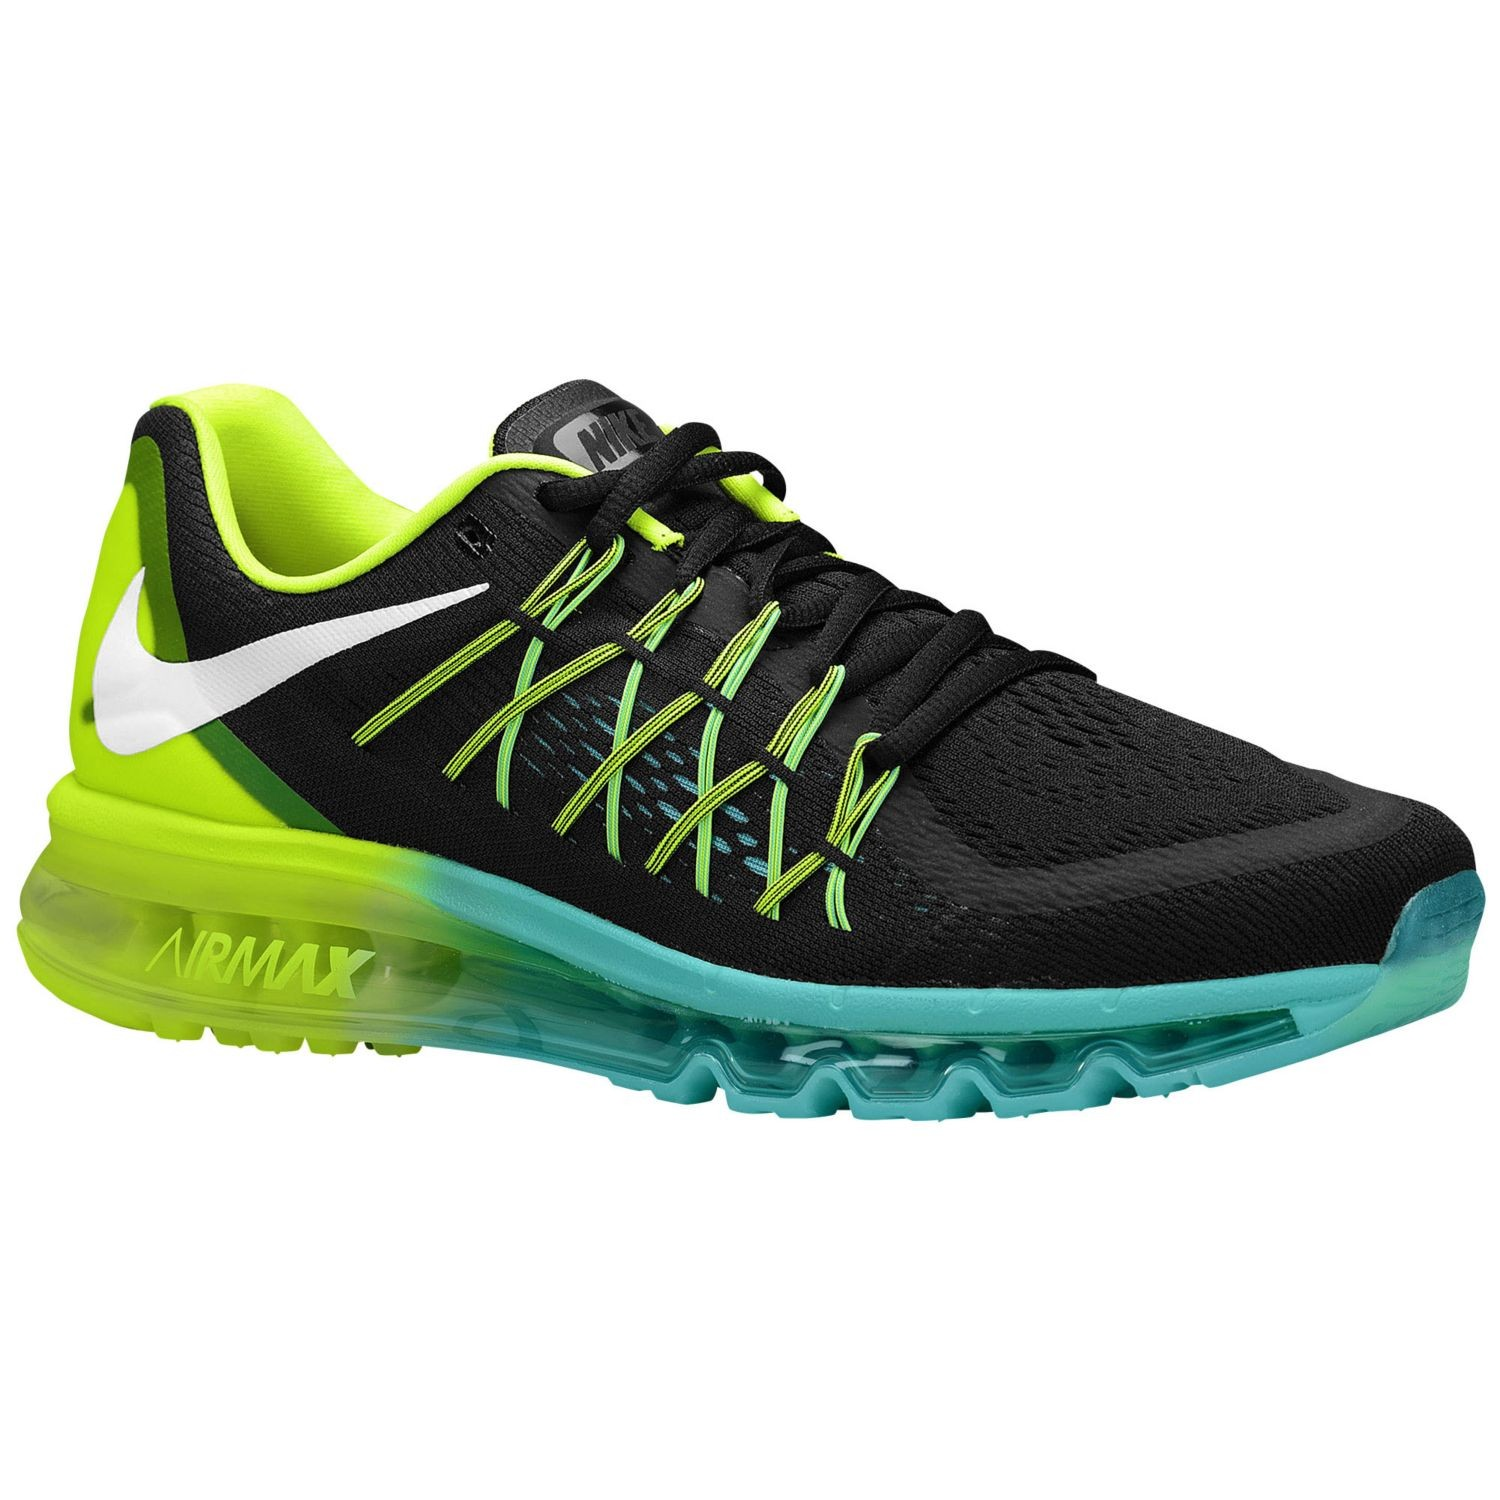 Nike Air Max 2015 698902-003 Black White Volt Hyper Jade Mens and Womens Running Shoes